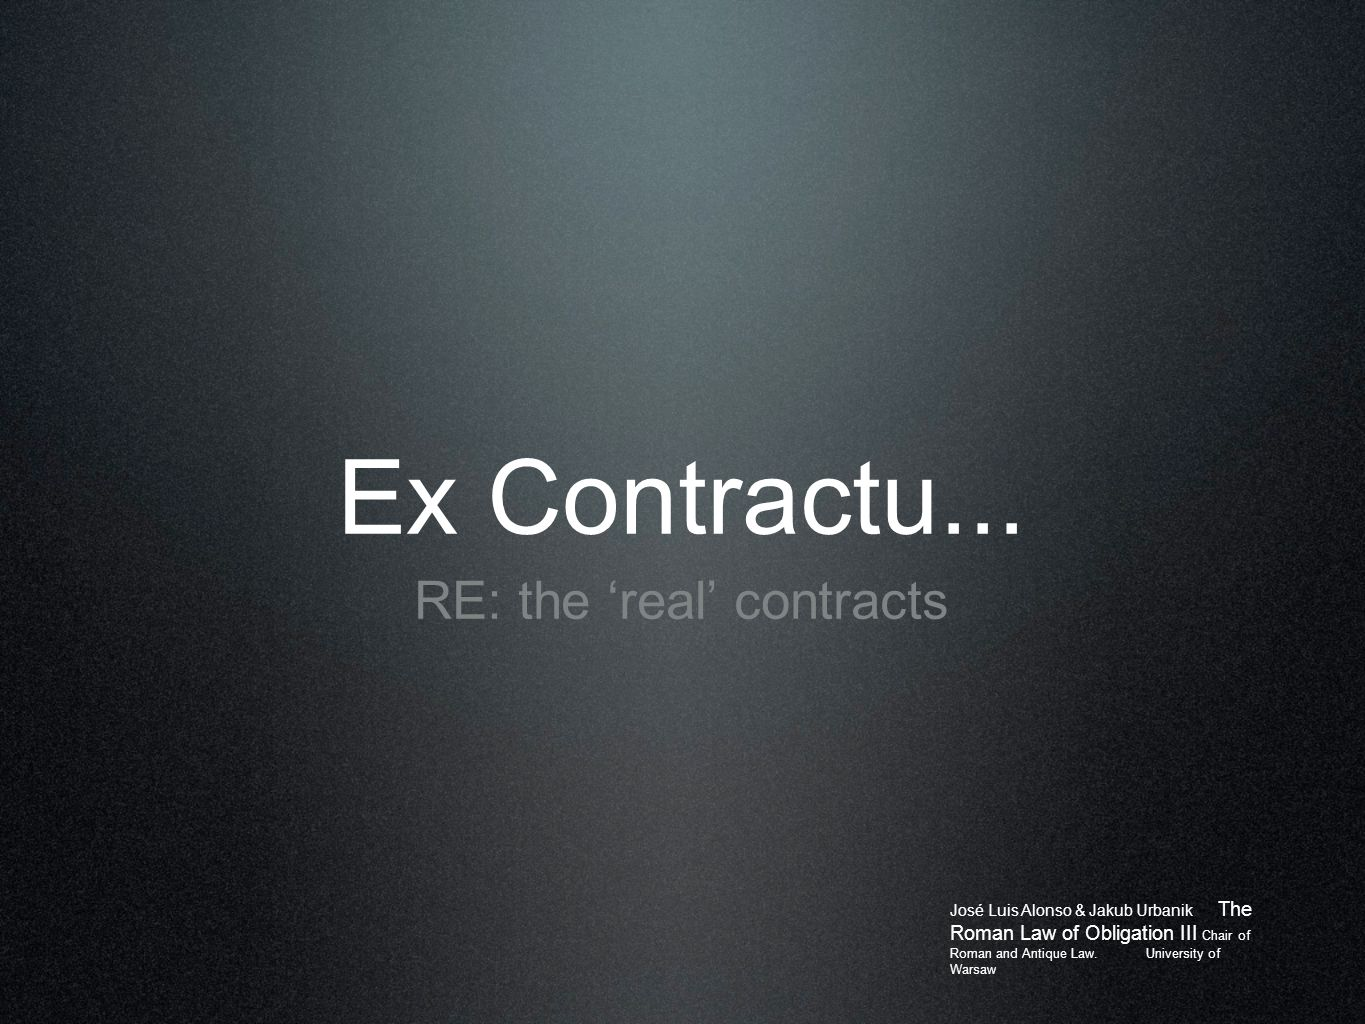 Ex Contractu... RE: the 'real' contracts José Luis Alonso & Jakub Urbanik The Roman Law of Obligation III Chair of Roman and Antique Law. University o